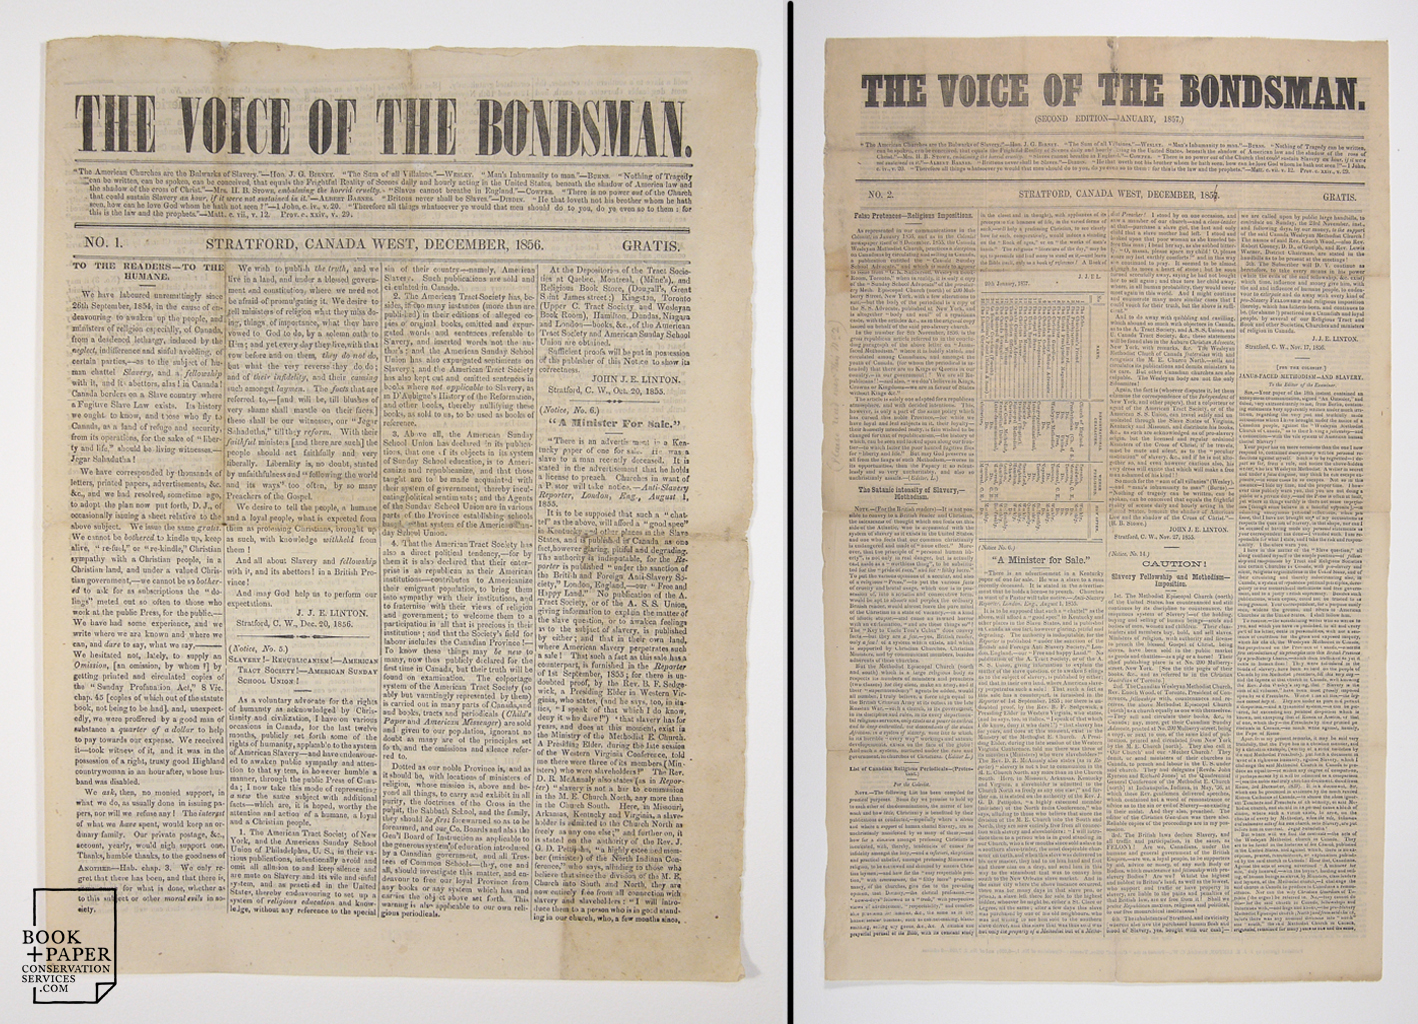 The Voice of the Bondsman , Issues 1 & 2, after conservation treatment.